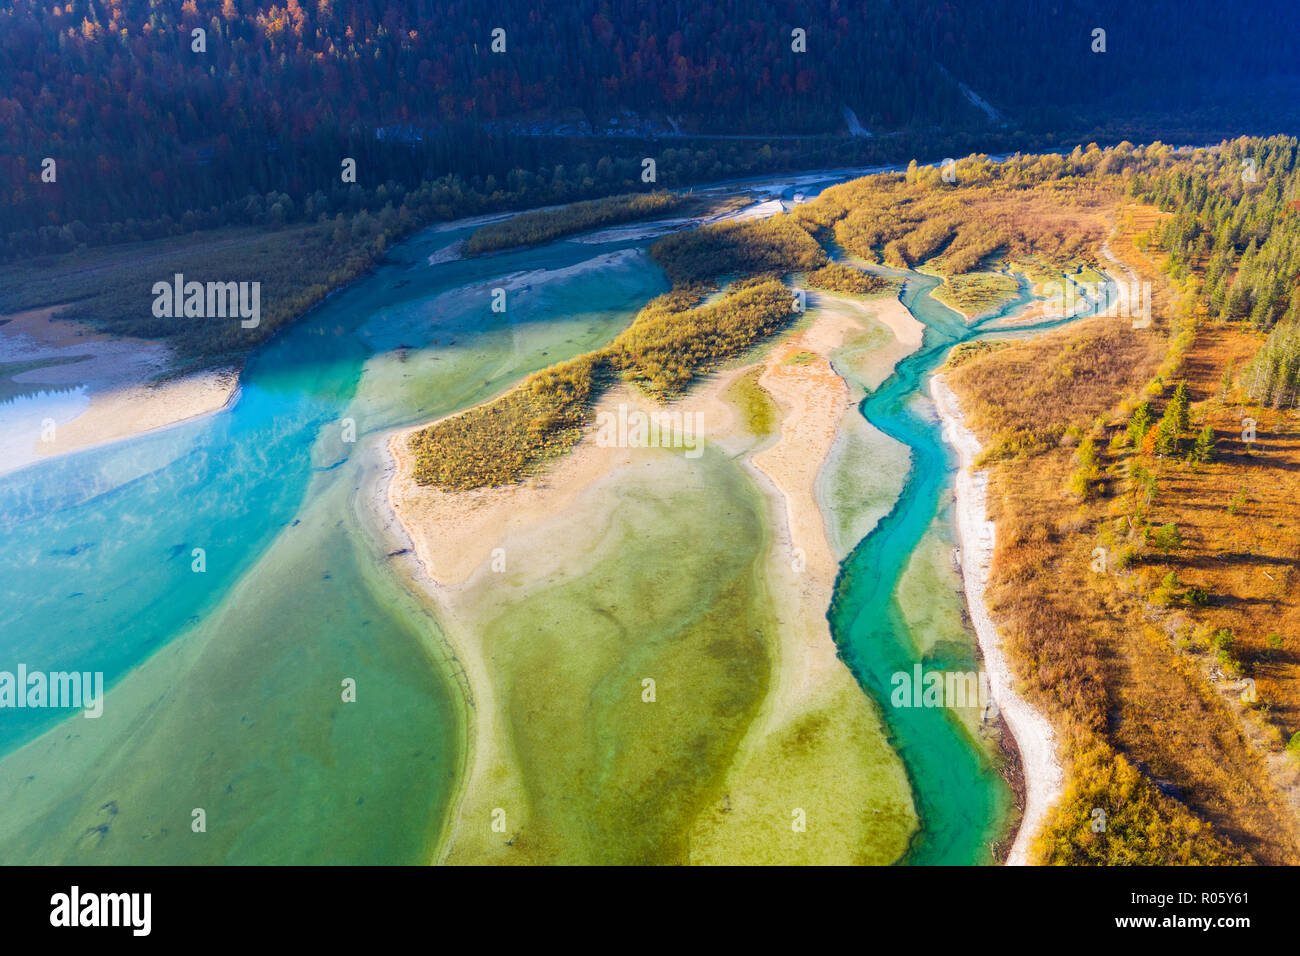 Isar, at the inflow into the Sylvenstein lake, Sylvenstein reservoir, drone image, Lenggries, Isarwinkel, Upper Bavaria, Bavaria Stock Photo